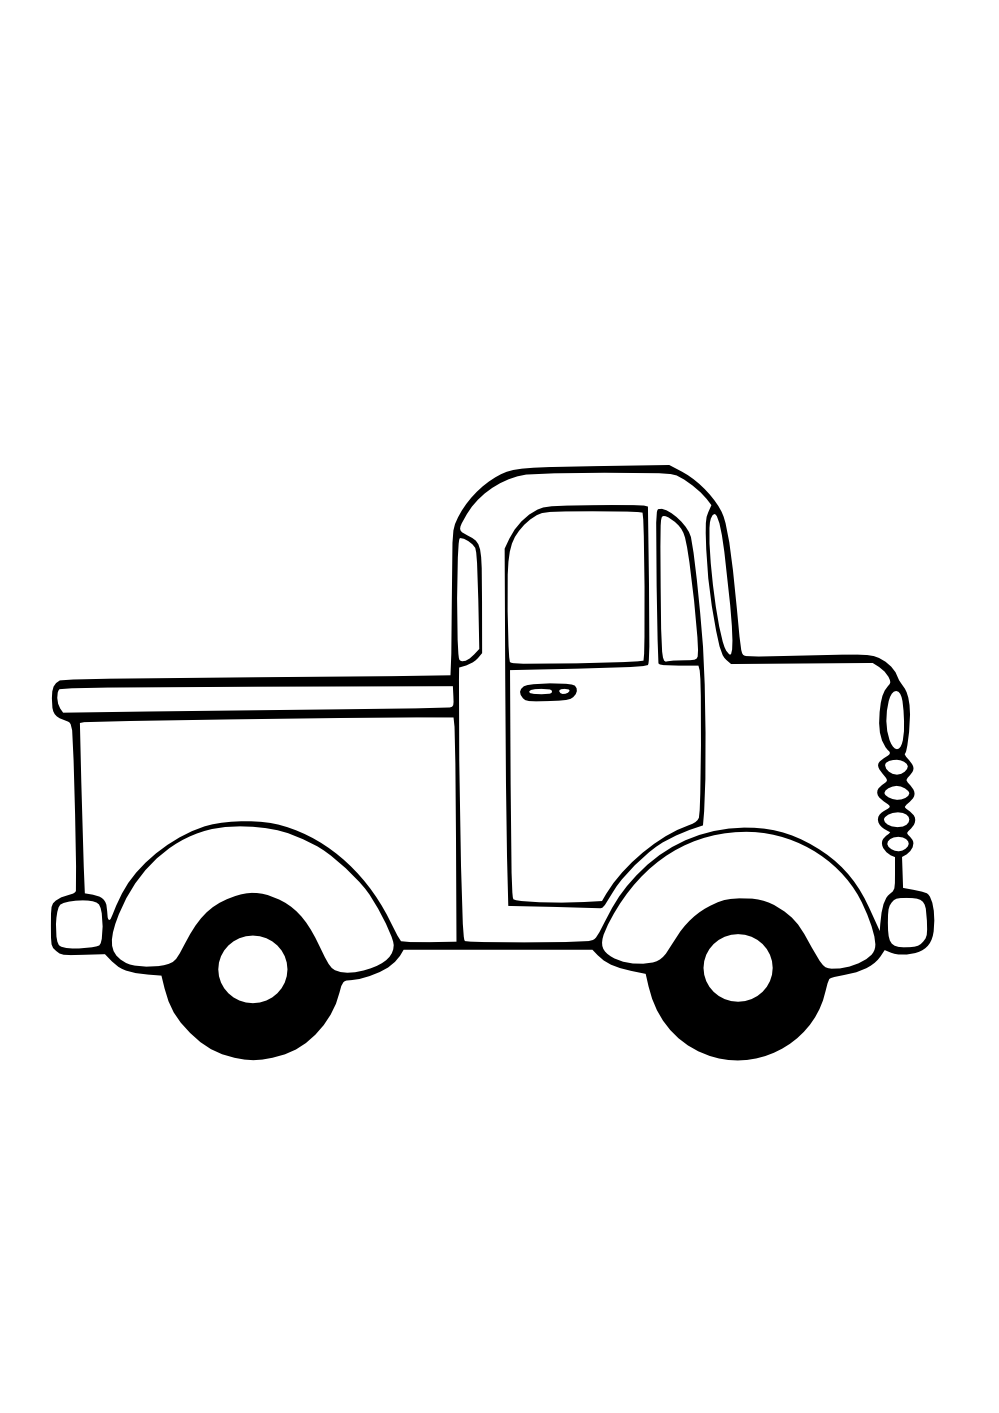 medium resolution of truck clipart black and white clipart panda free clipart images